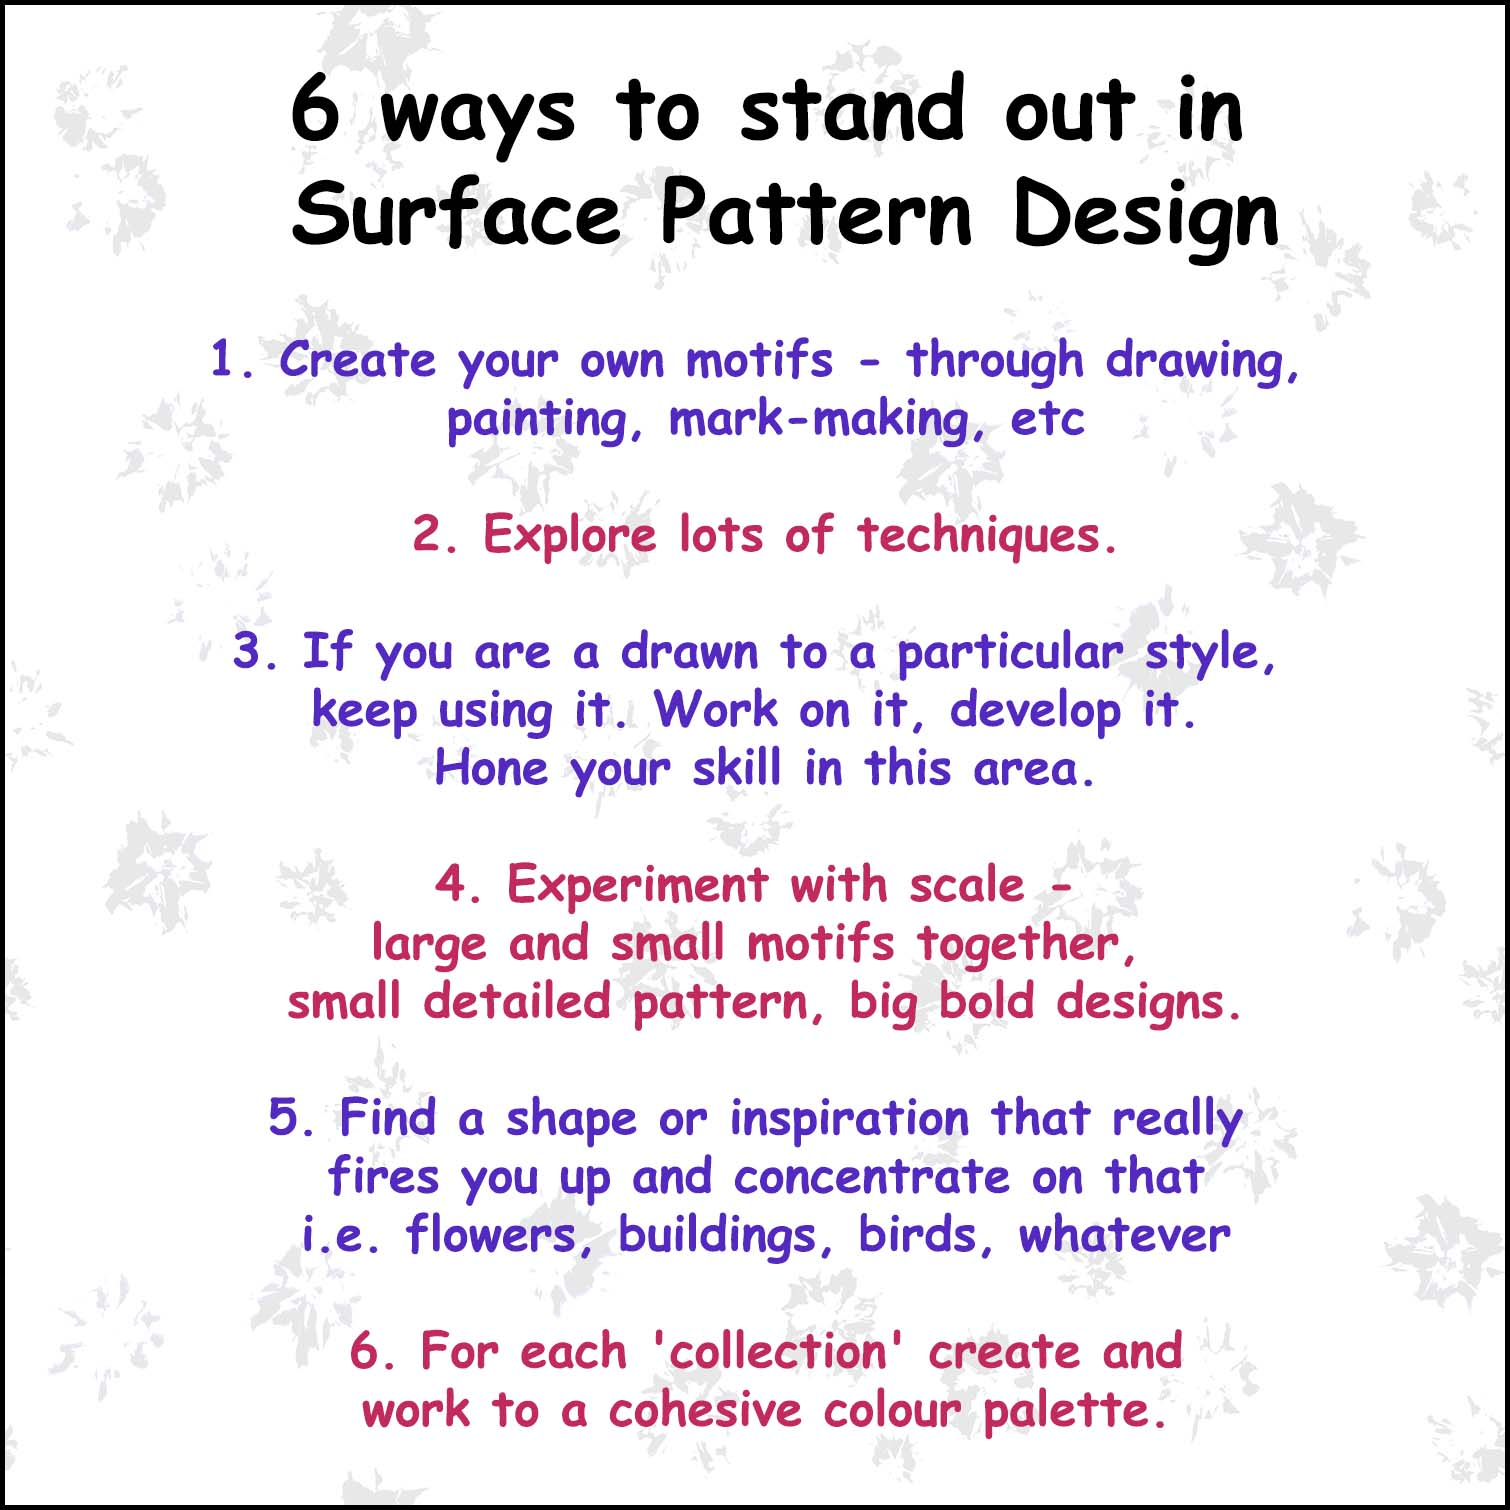 How to stand out in Surface Pattern Design